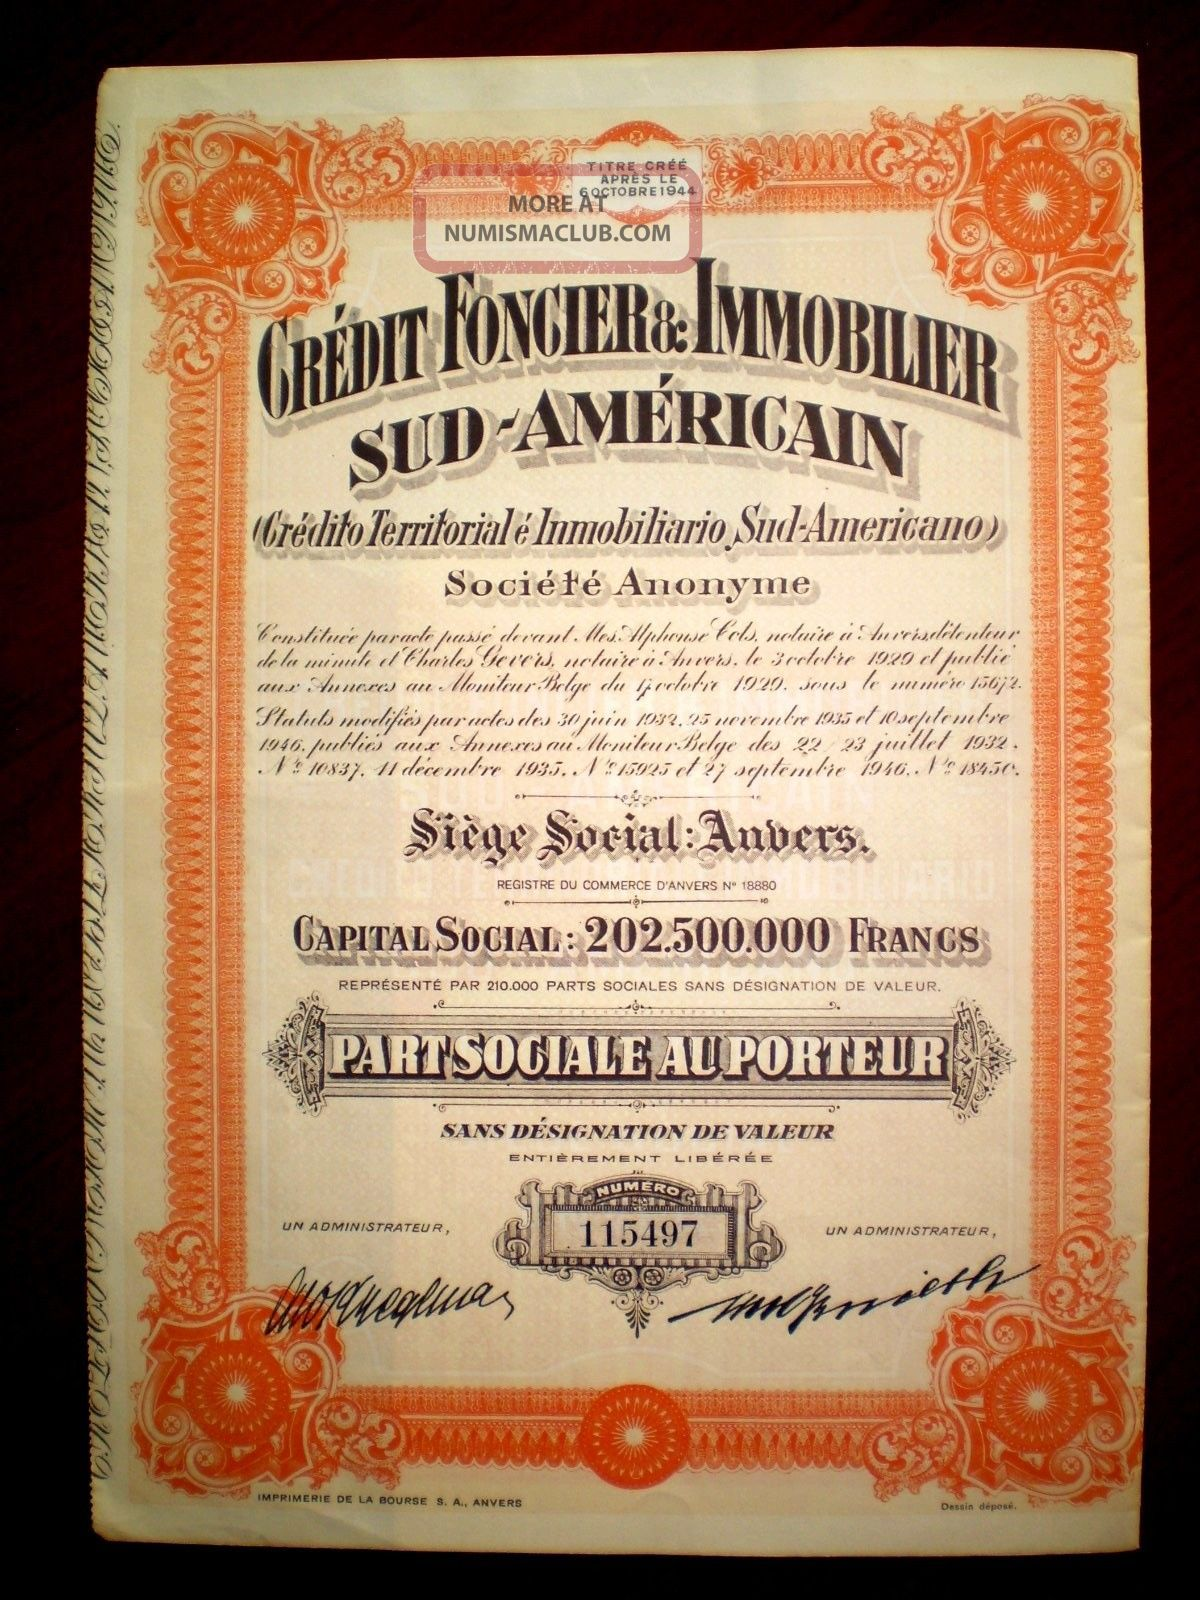 Credit Foncier & Inmobilier Sud - Américain 1946 Argentina Share Certificate World photo